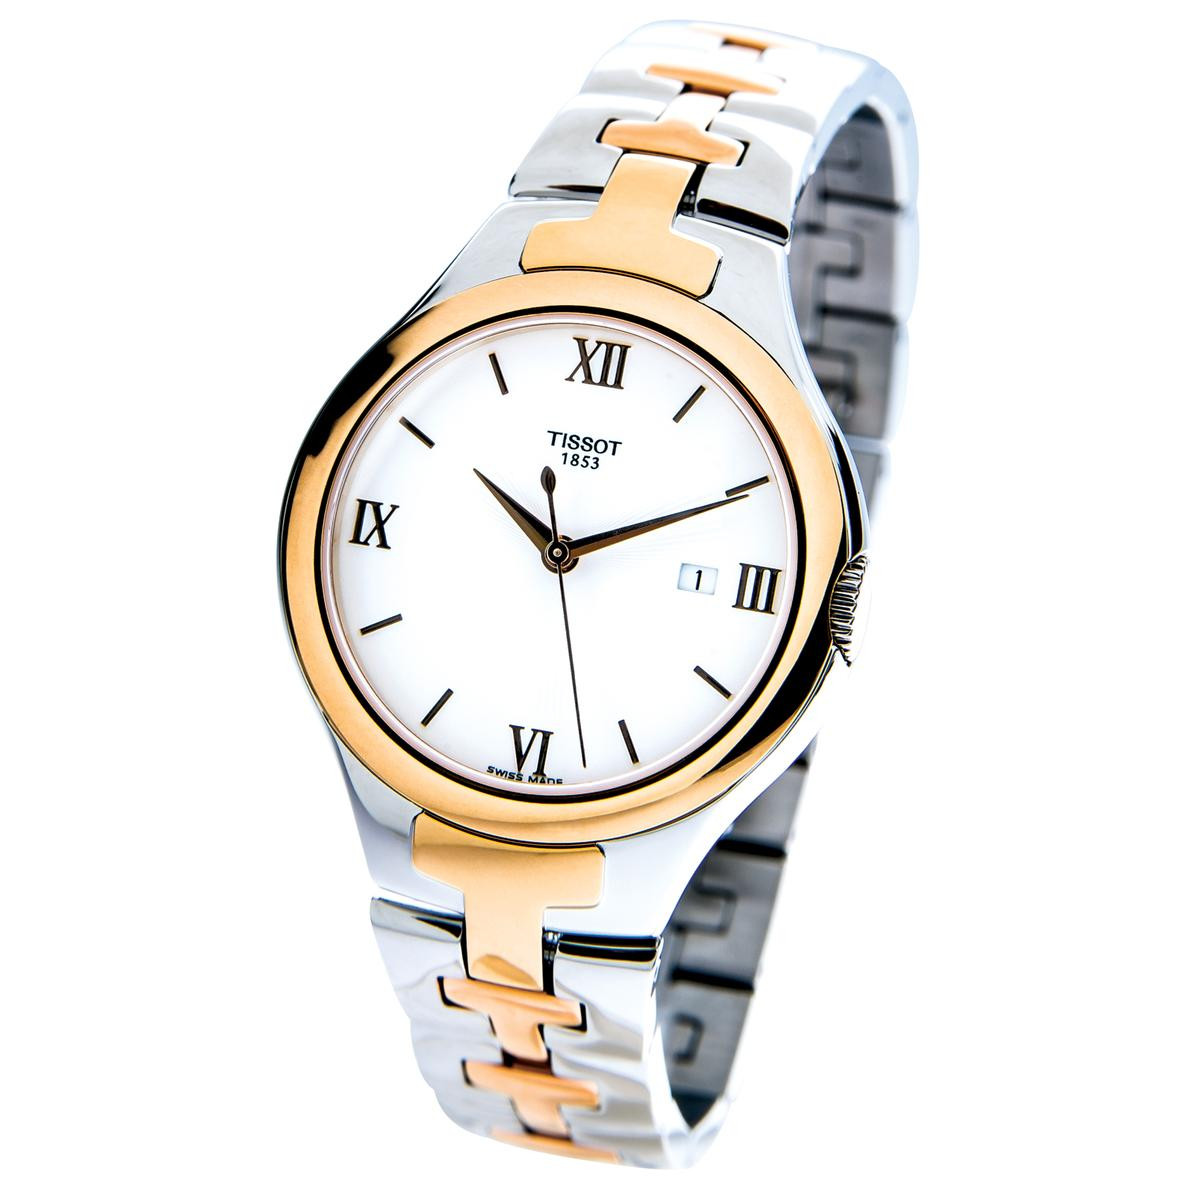 New Tissot T12 with Two-Tone Bracelet